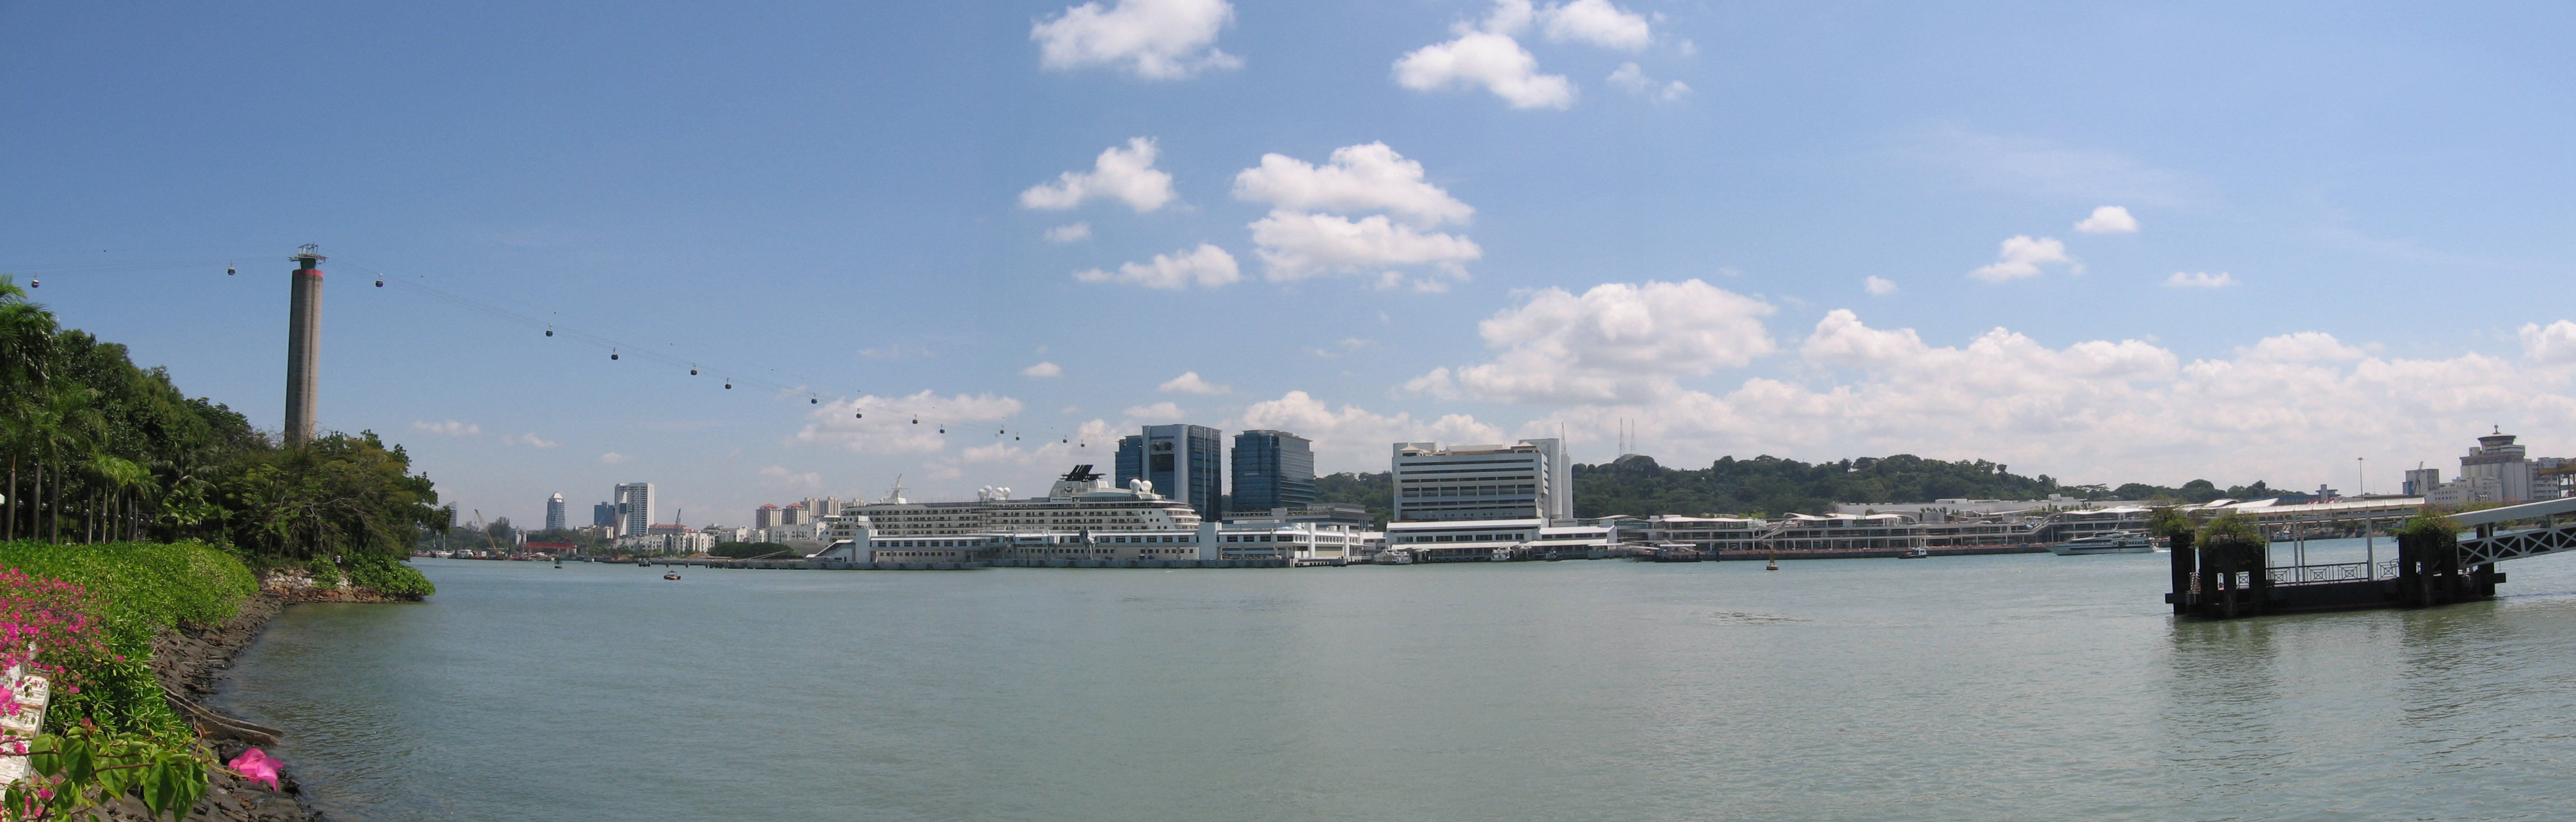 Panoramic View of Harbourfront